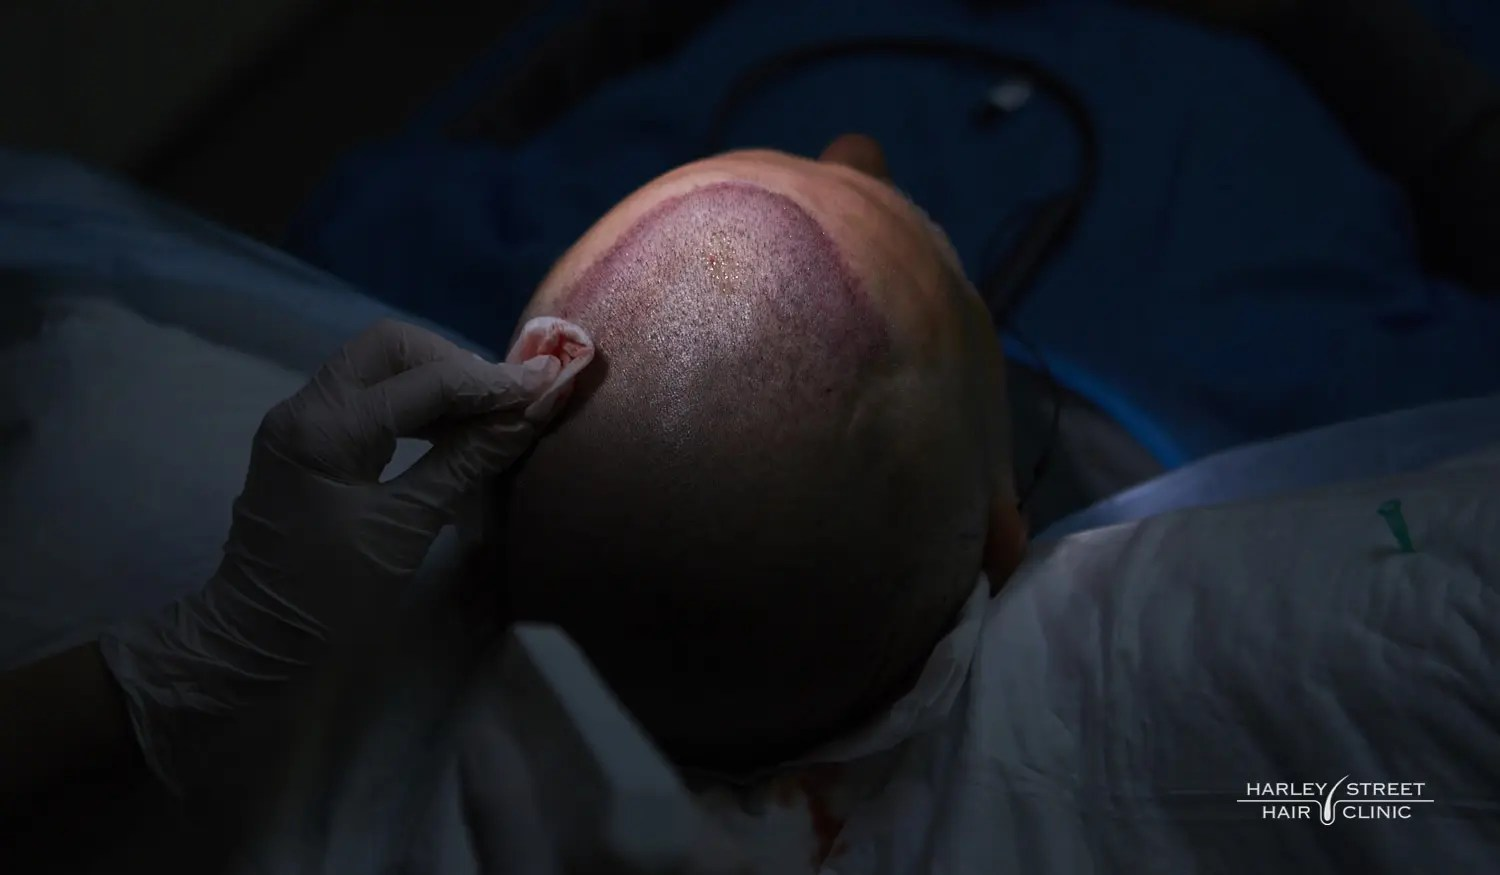 Hair Transplants & COVID-19 – How To Manage Hair Loss In Lockdown